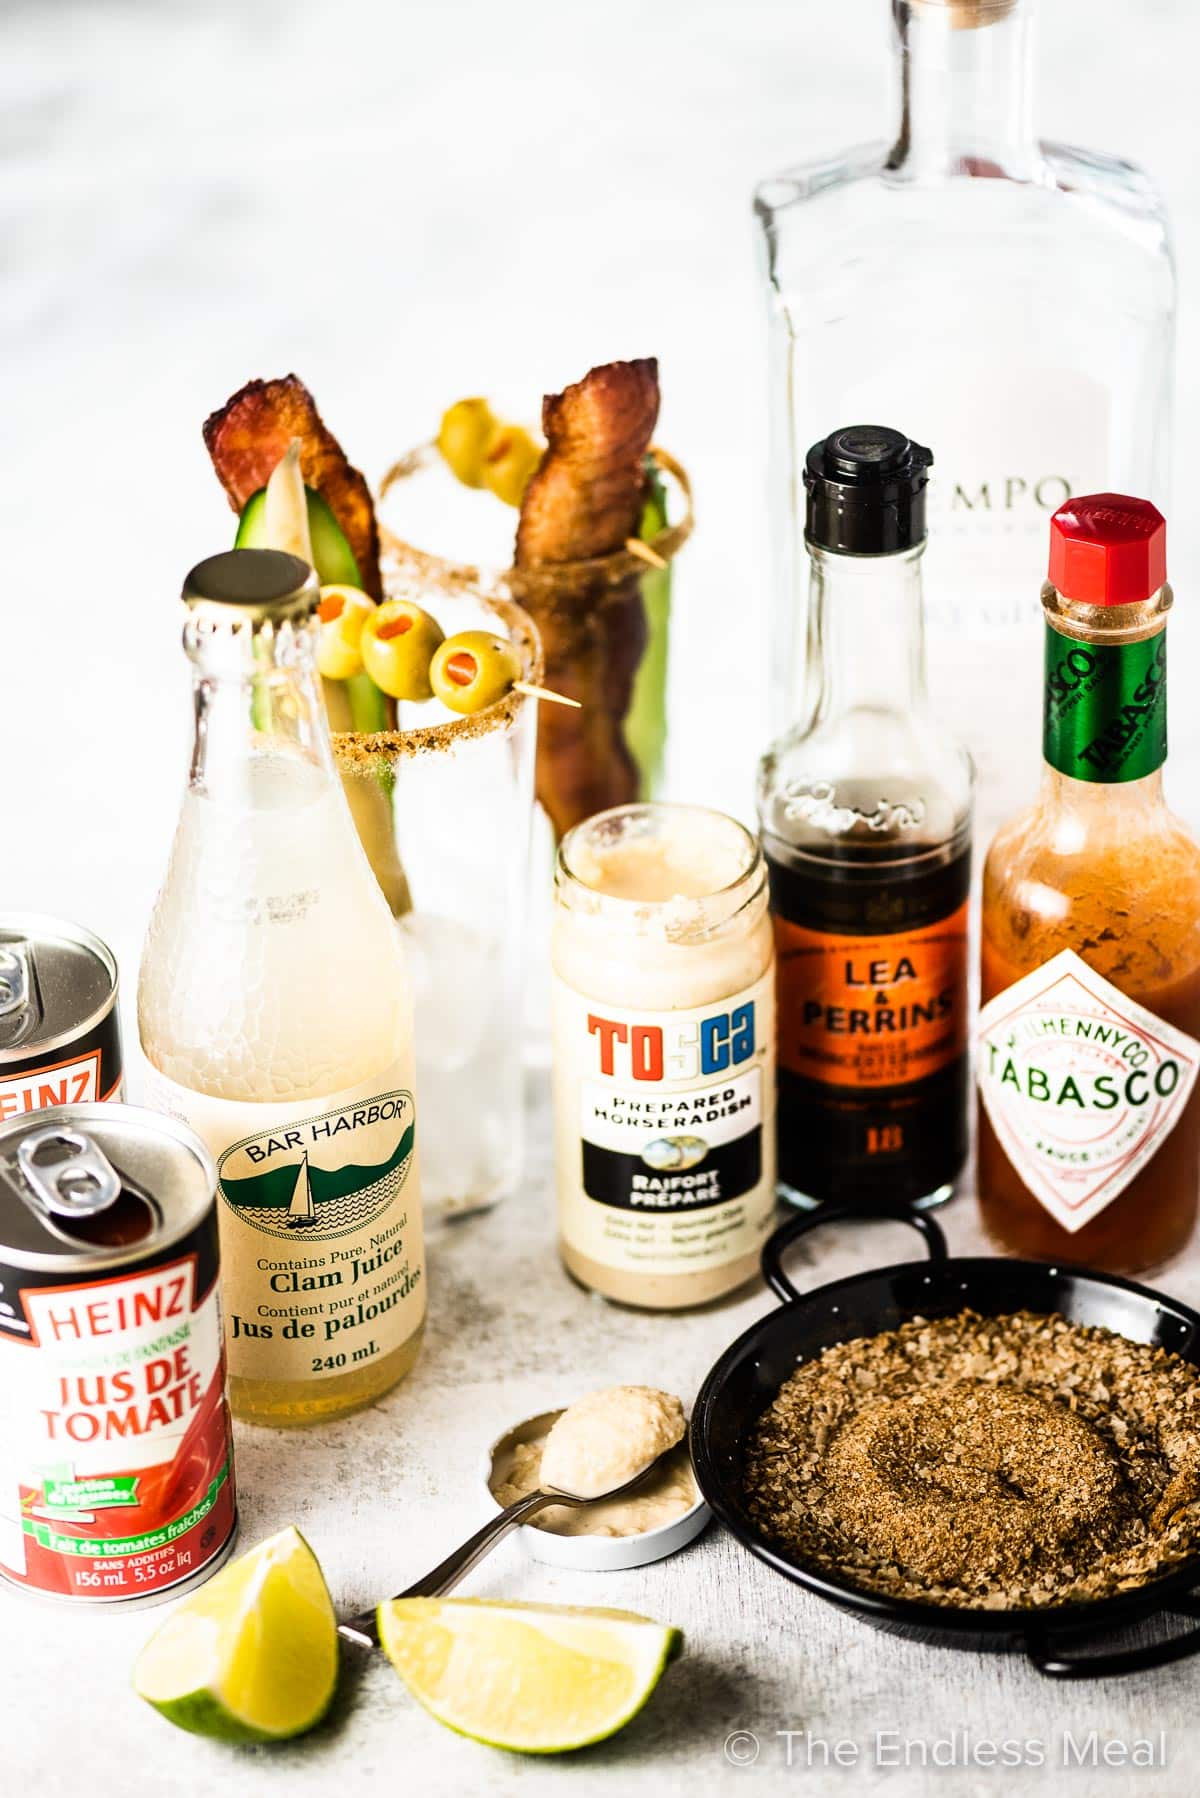 All the ingredients to make the best Bloody Caesar cocktail.